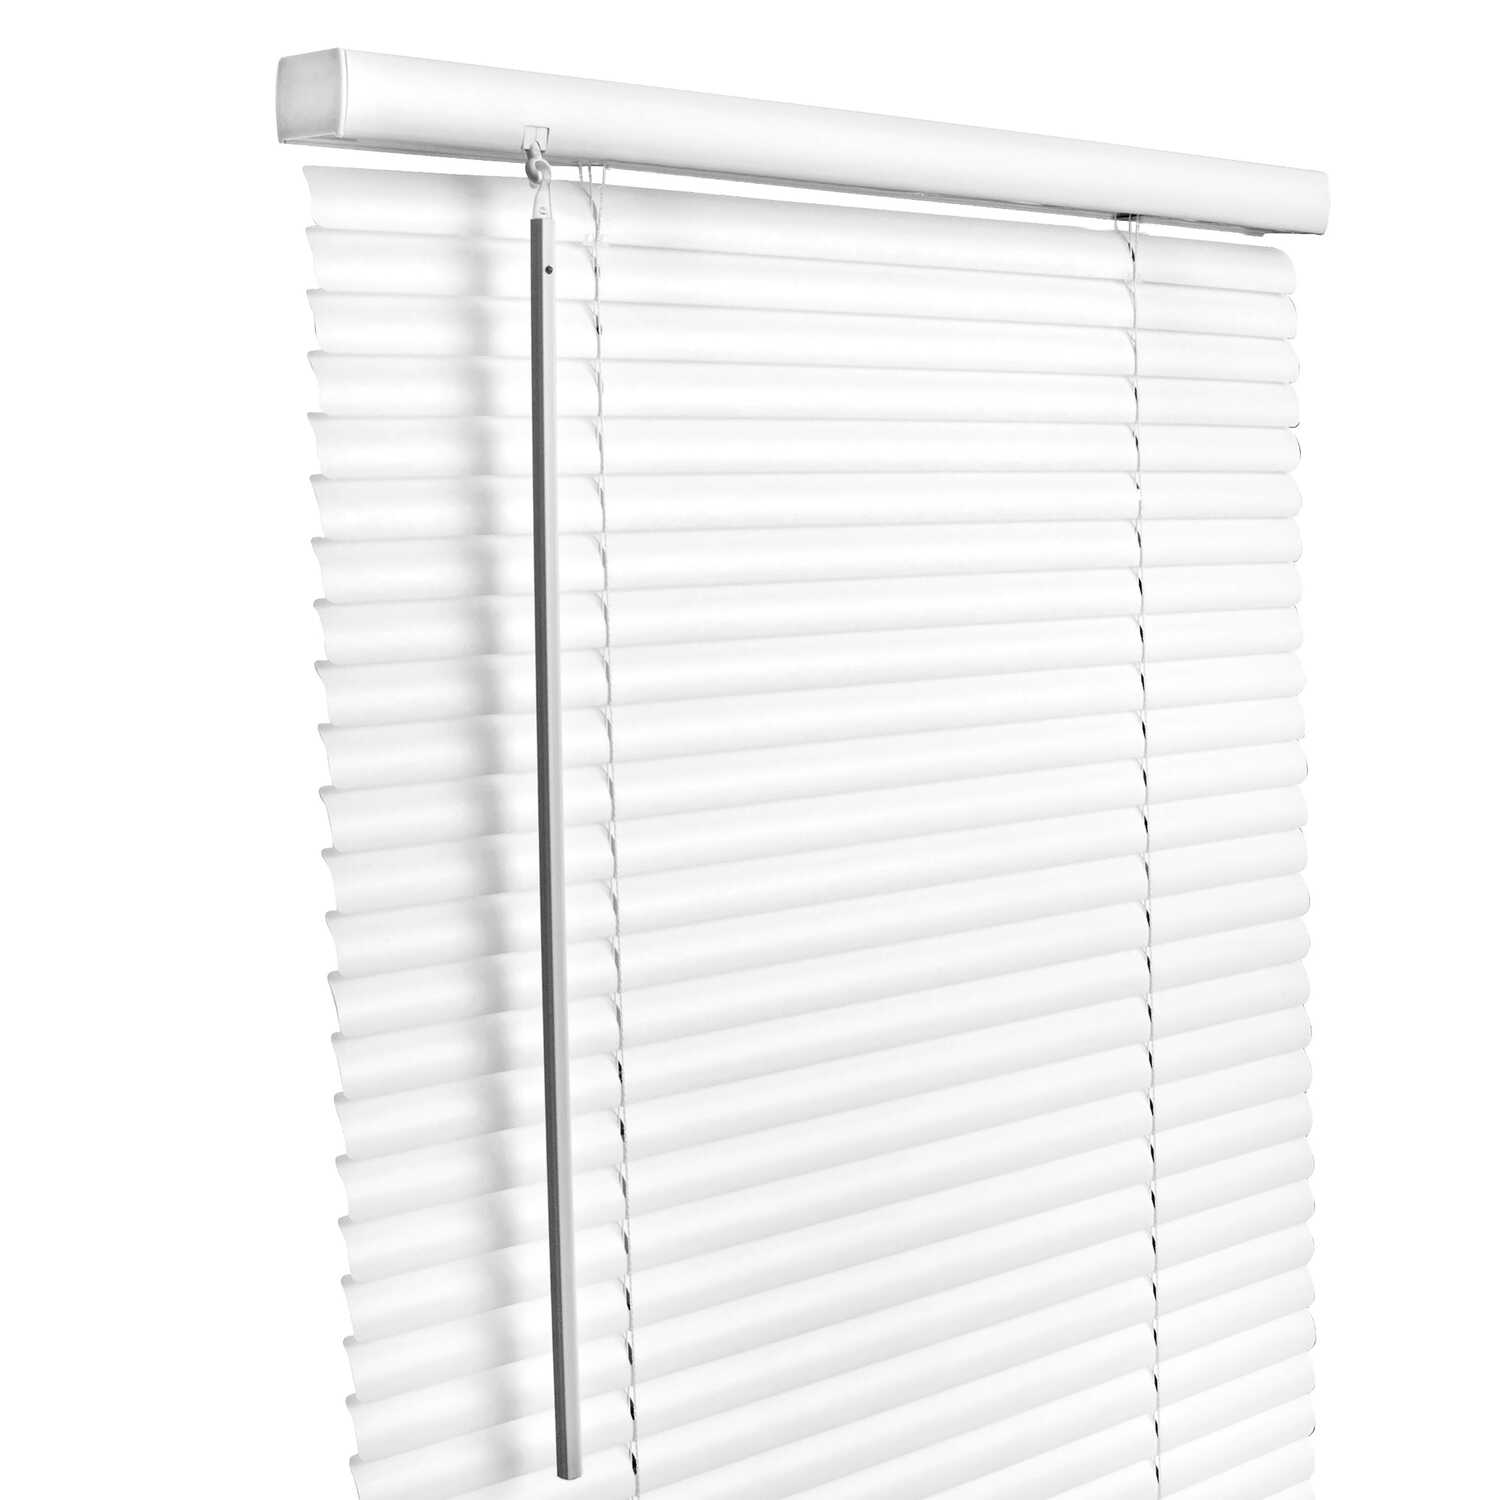 Living Accents  Vinyl  1 in. Mini-Blinds  23 in. W x 42 in. H White  Cordless